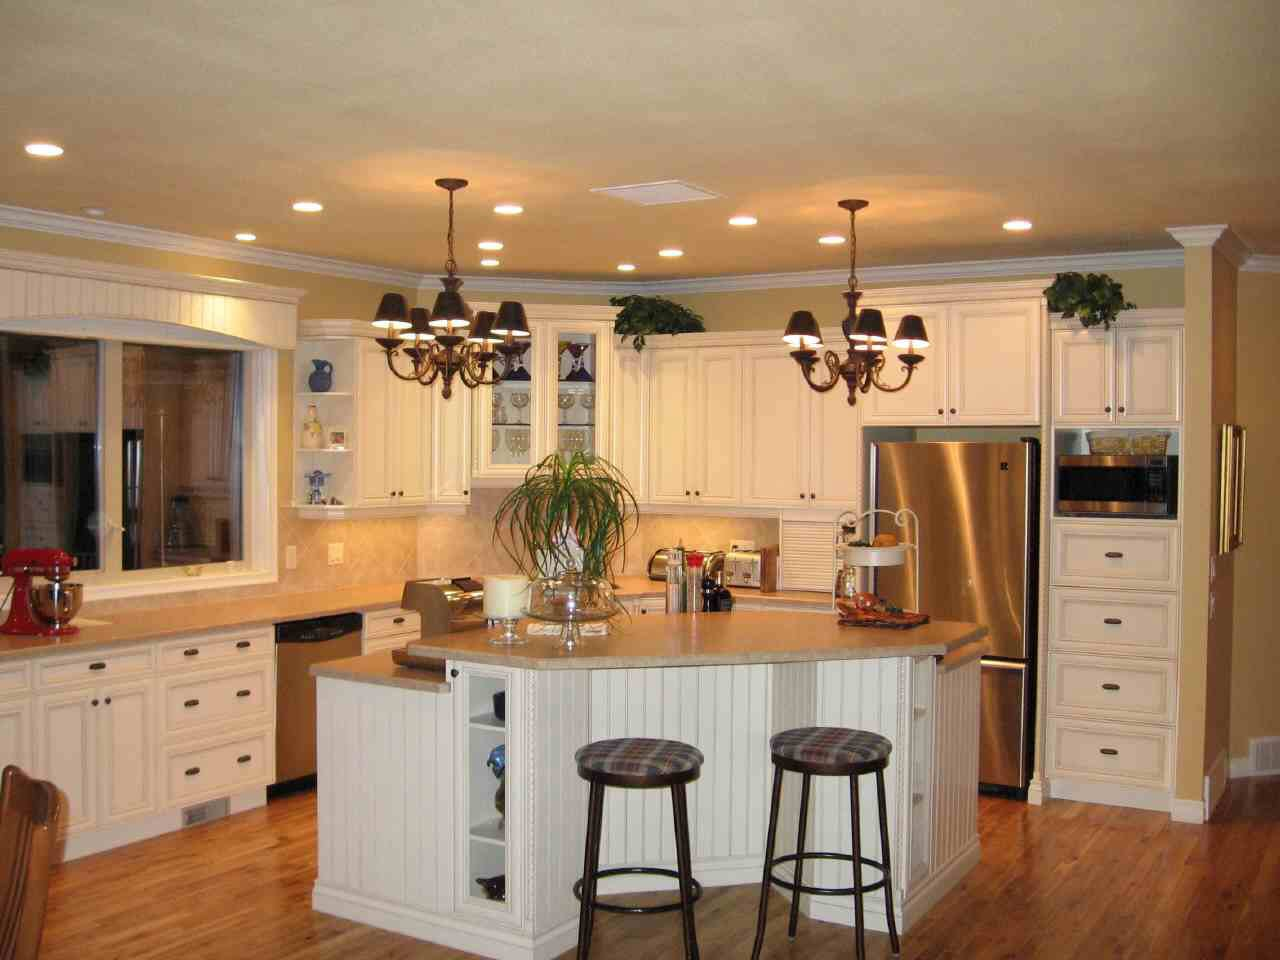 Remarkable White Small Kitchen Design Ideas 1280 x 960 · 109 kB · jpeg